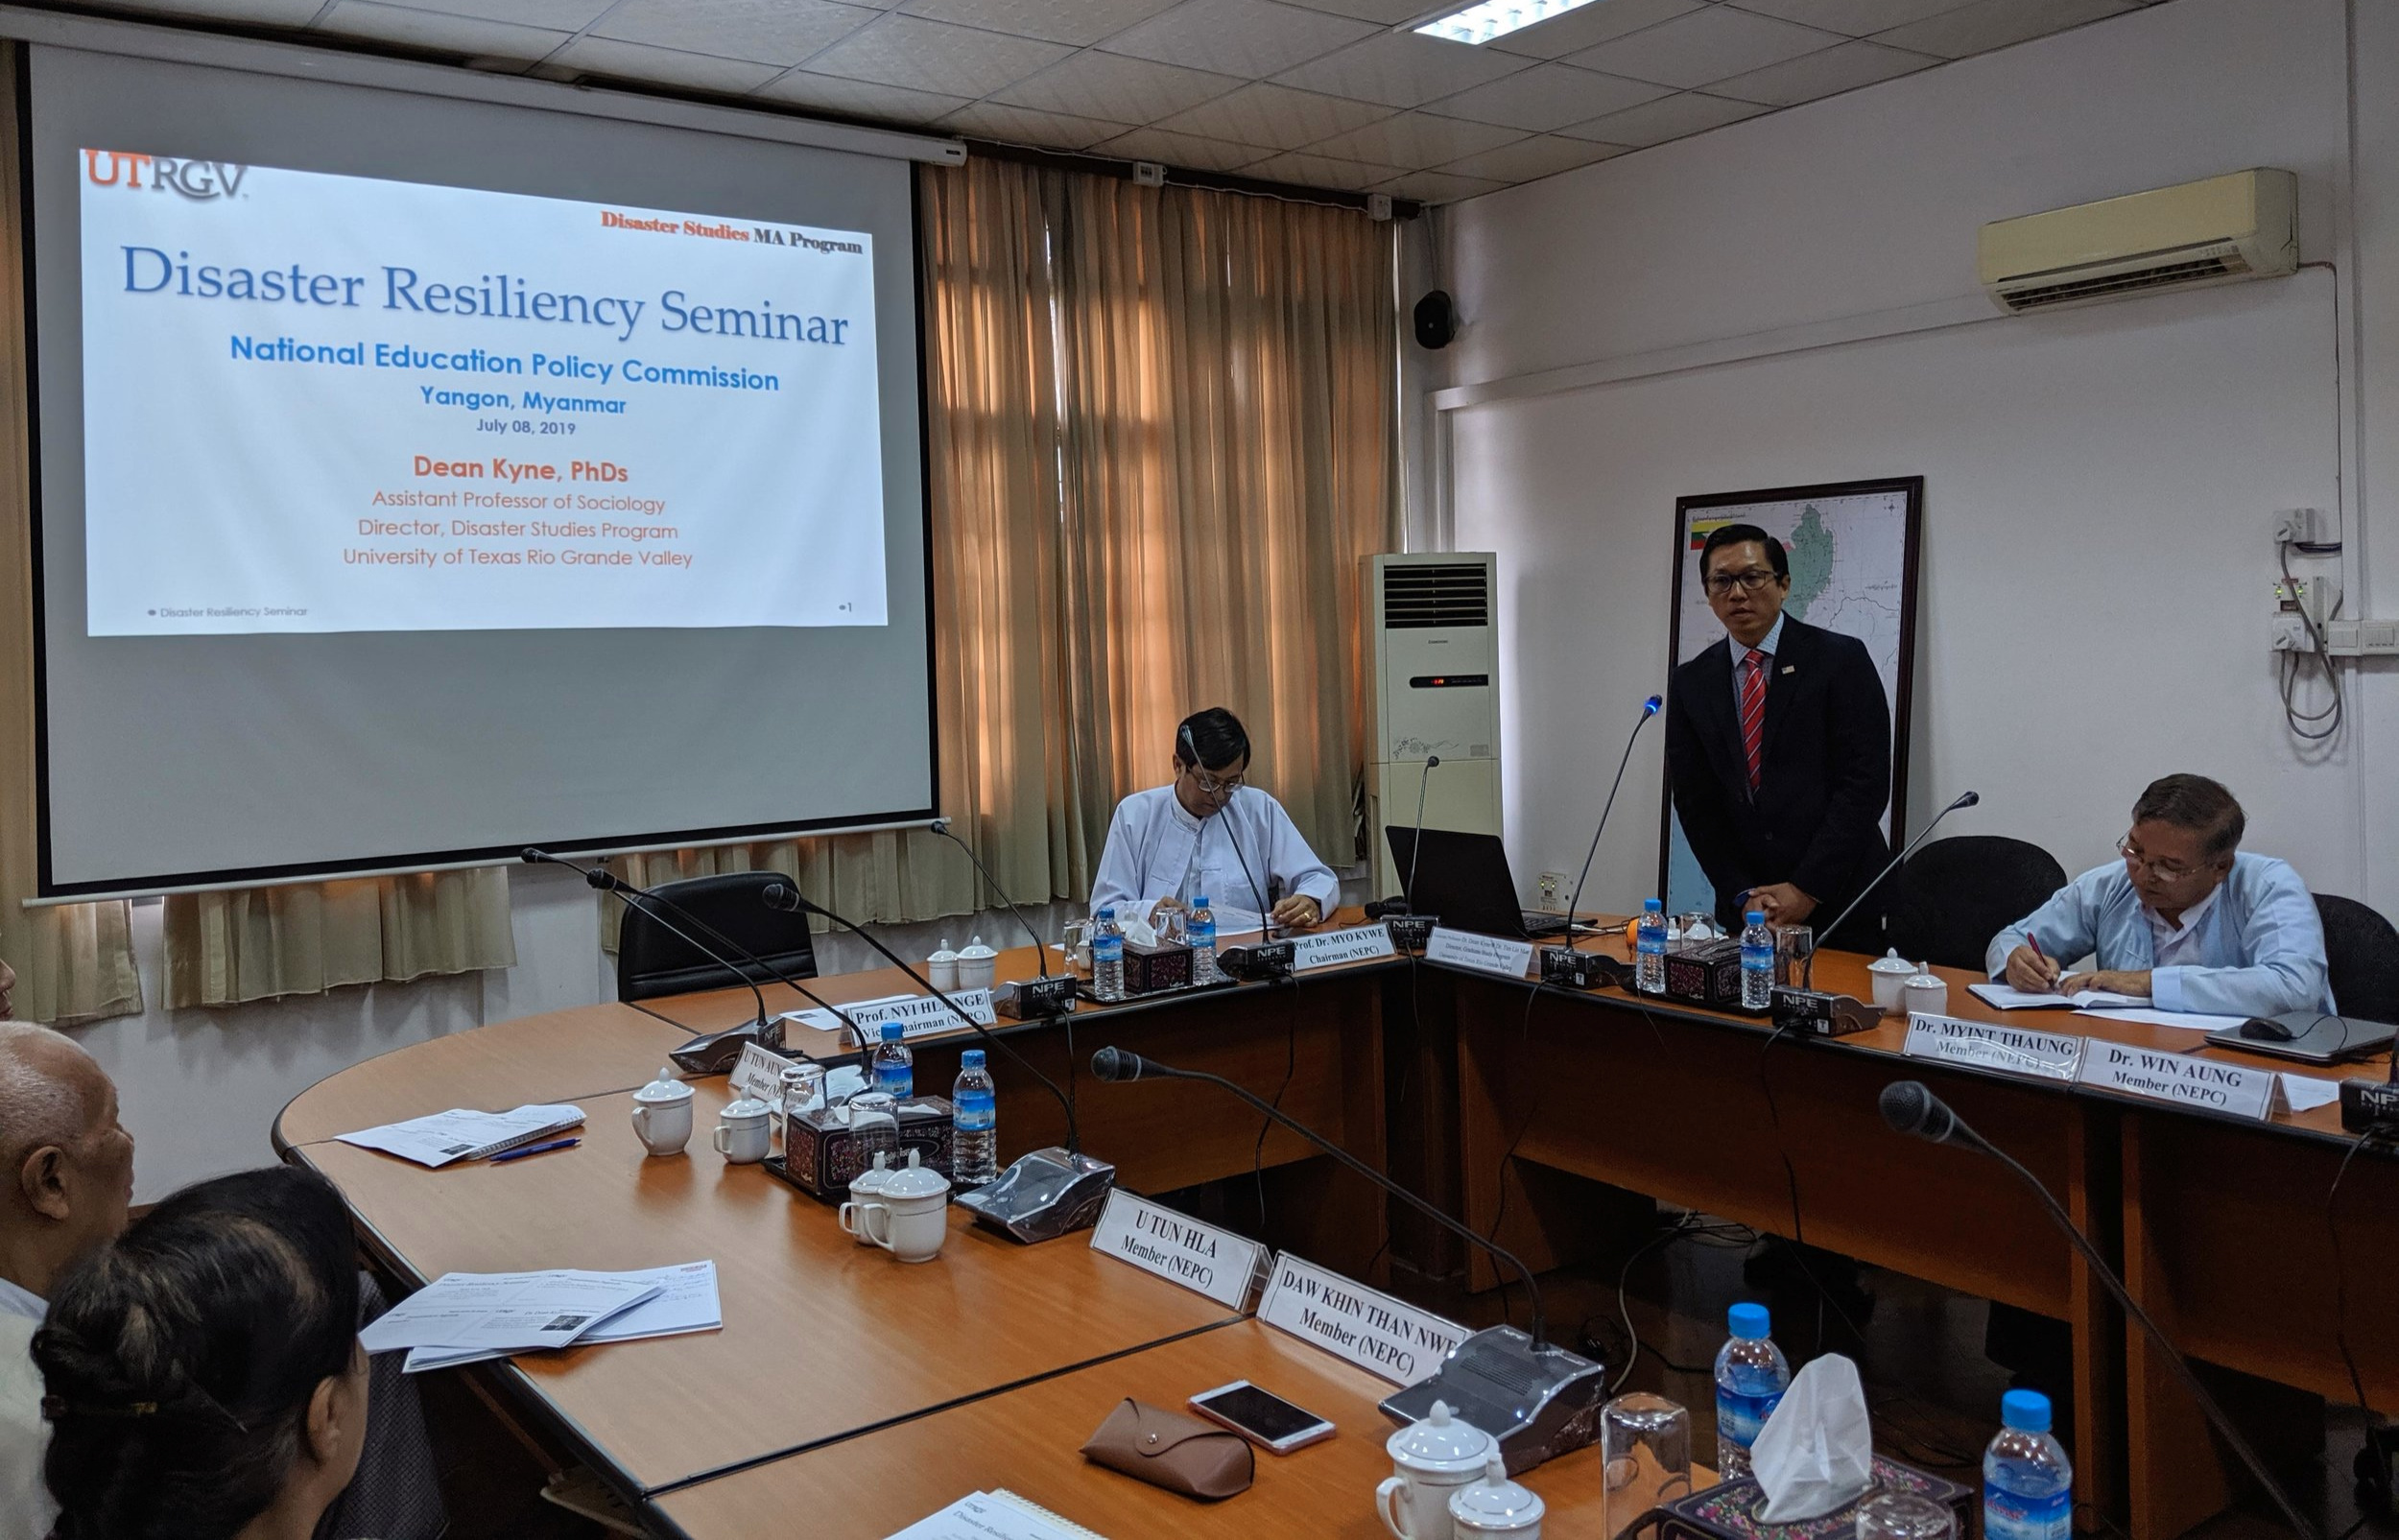 Another seminar on disaster resiliency held at the National education Policy Commission, Yangon, Myanmar on July 8, 2019